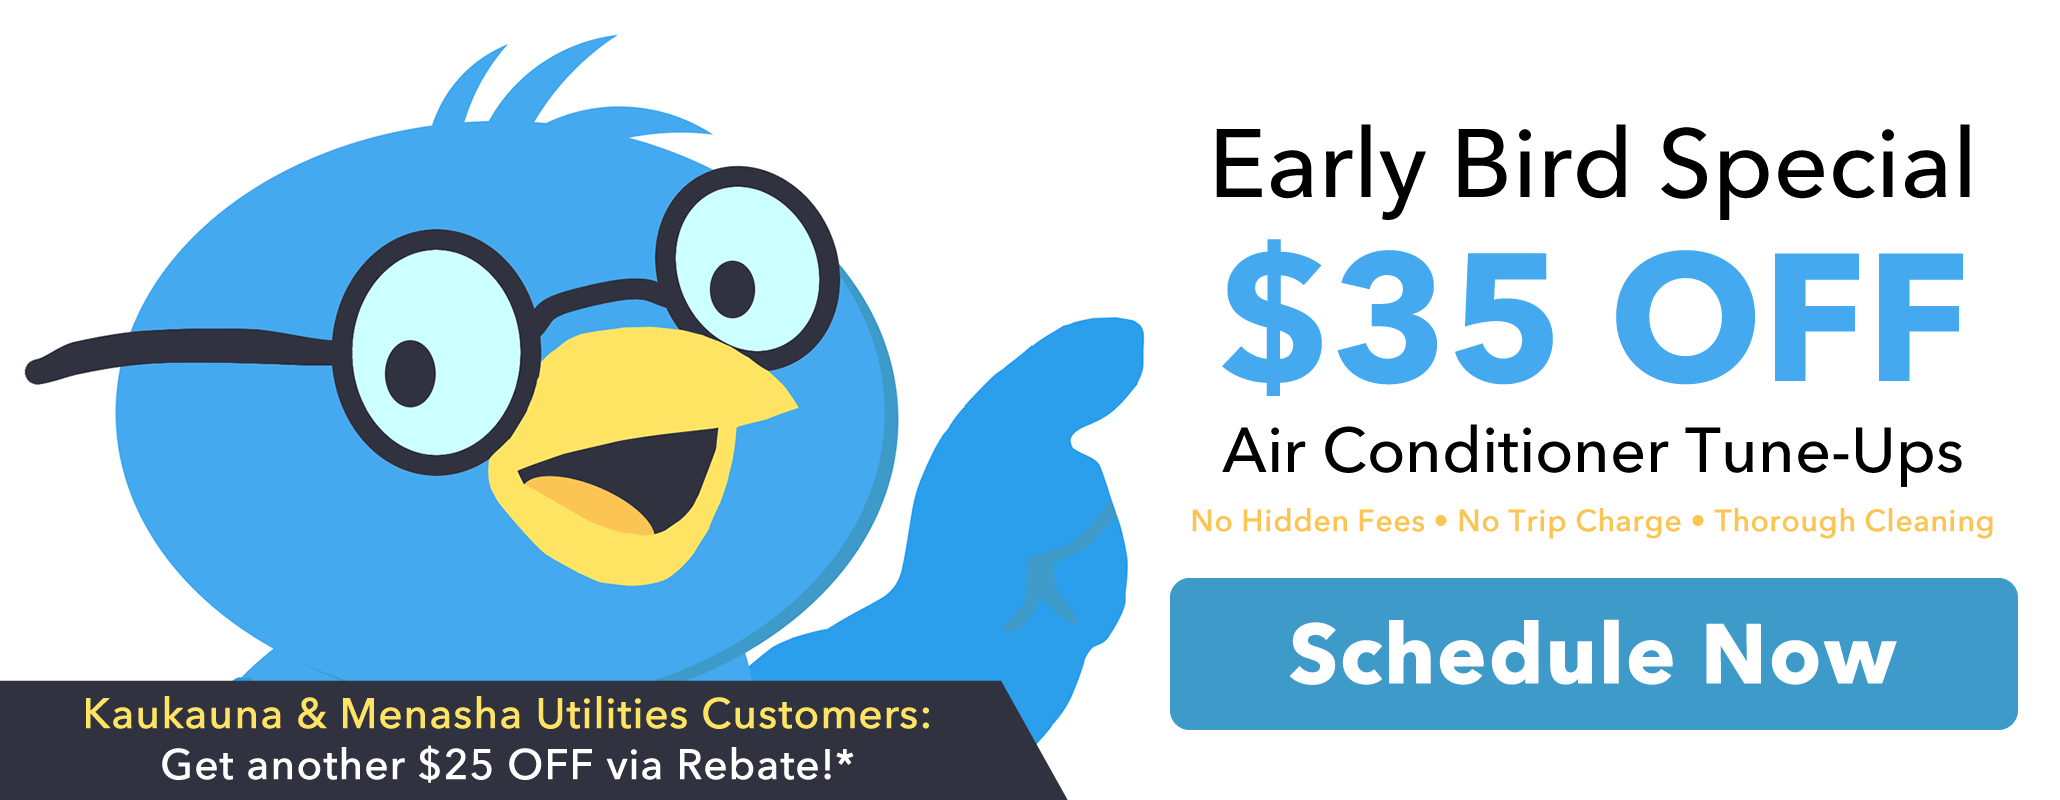 We fill up very quick once the warm weather arrives. Last year customers who waited for their A/C tune-up and called in June had to wait until August. Don't miss out, beat the rush! Book now and save $35. No hidden fees, no trip charges, and a Thorough Tune-up from the Good Guys.